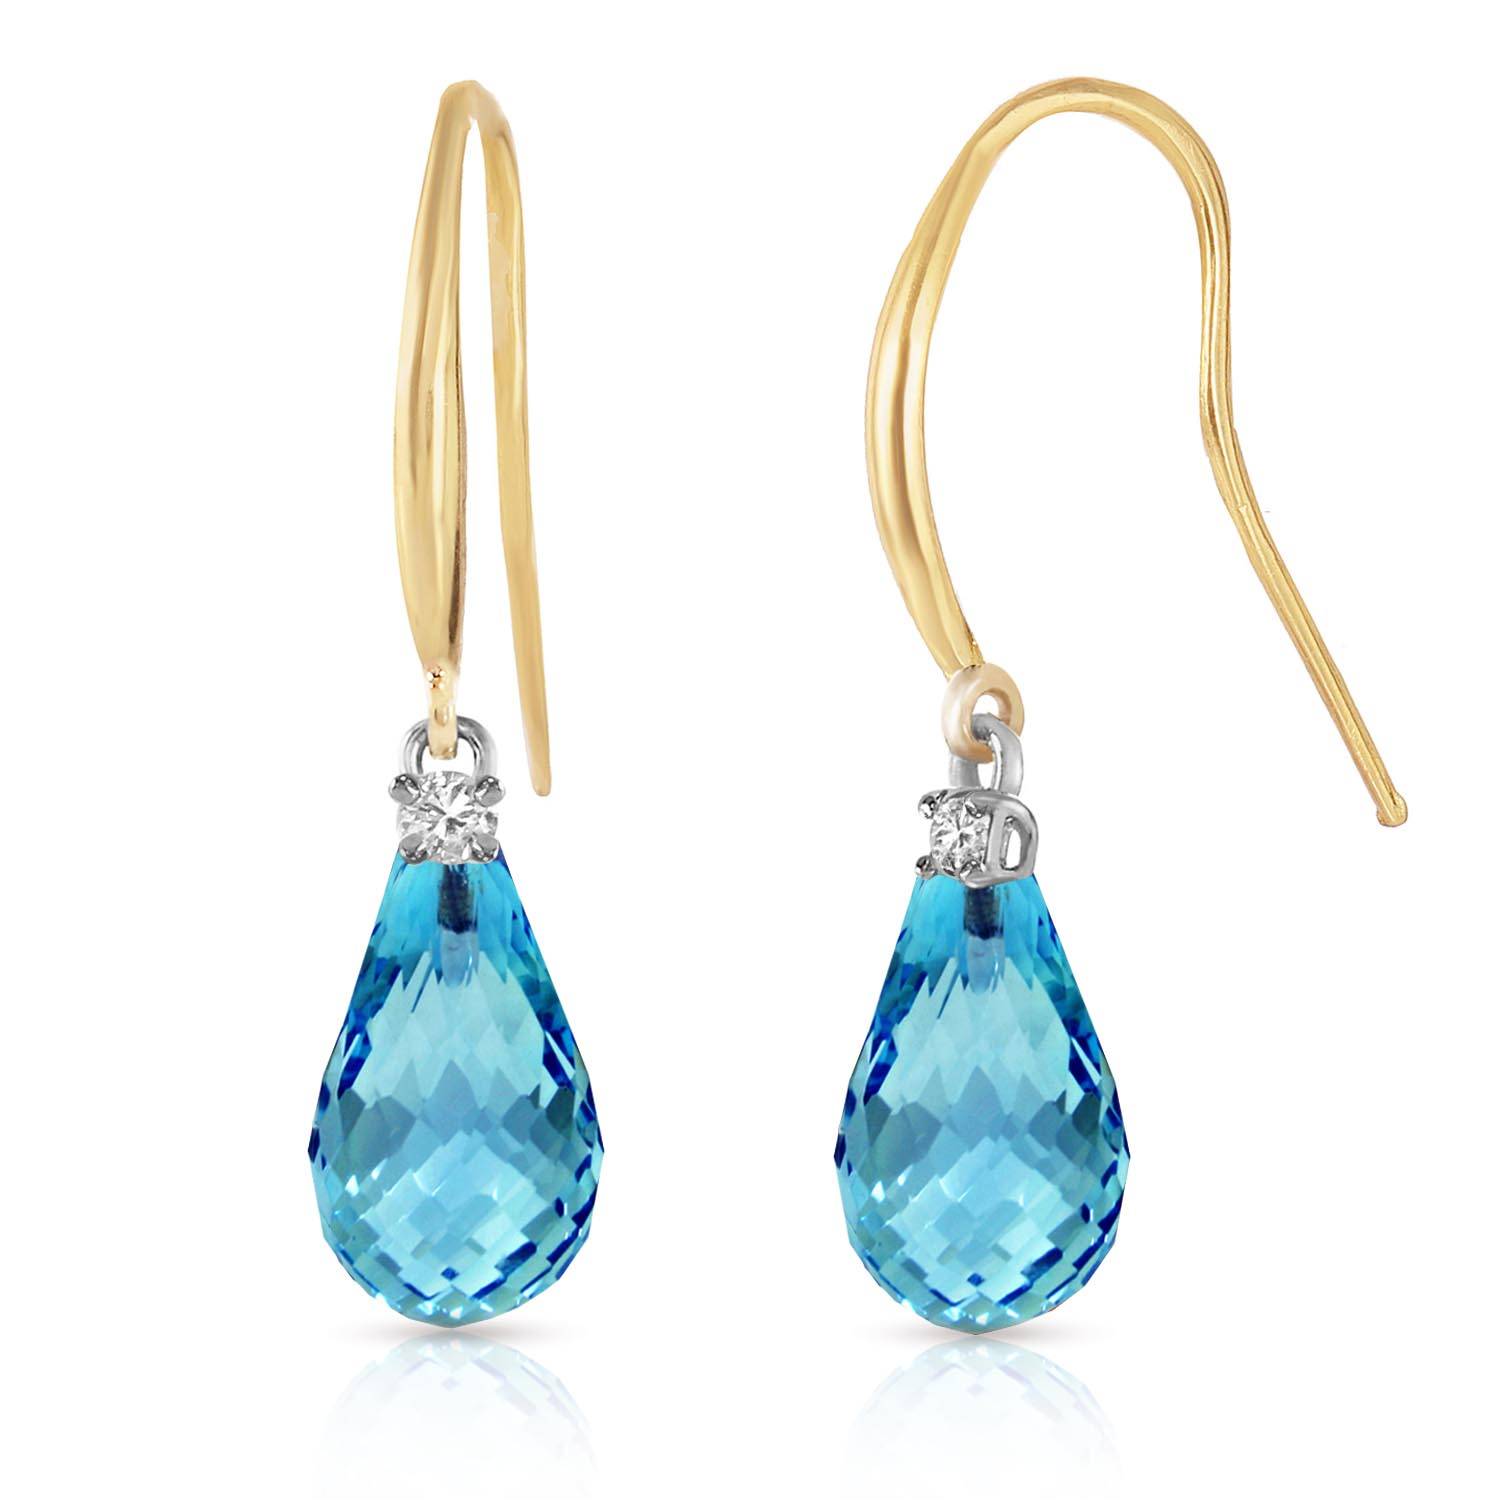 Blue Topaz and Diamond Drop Earrings 4.5ctw in 9ct Gold